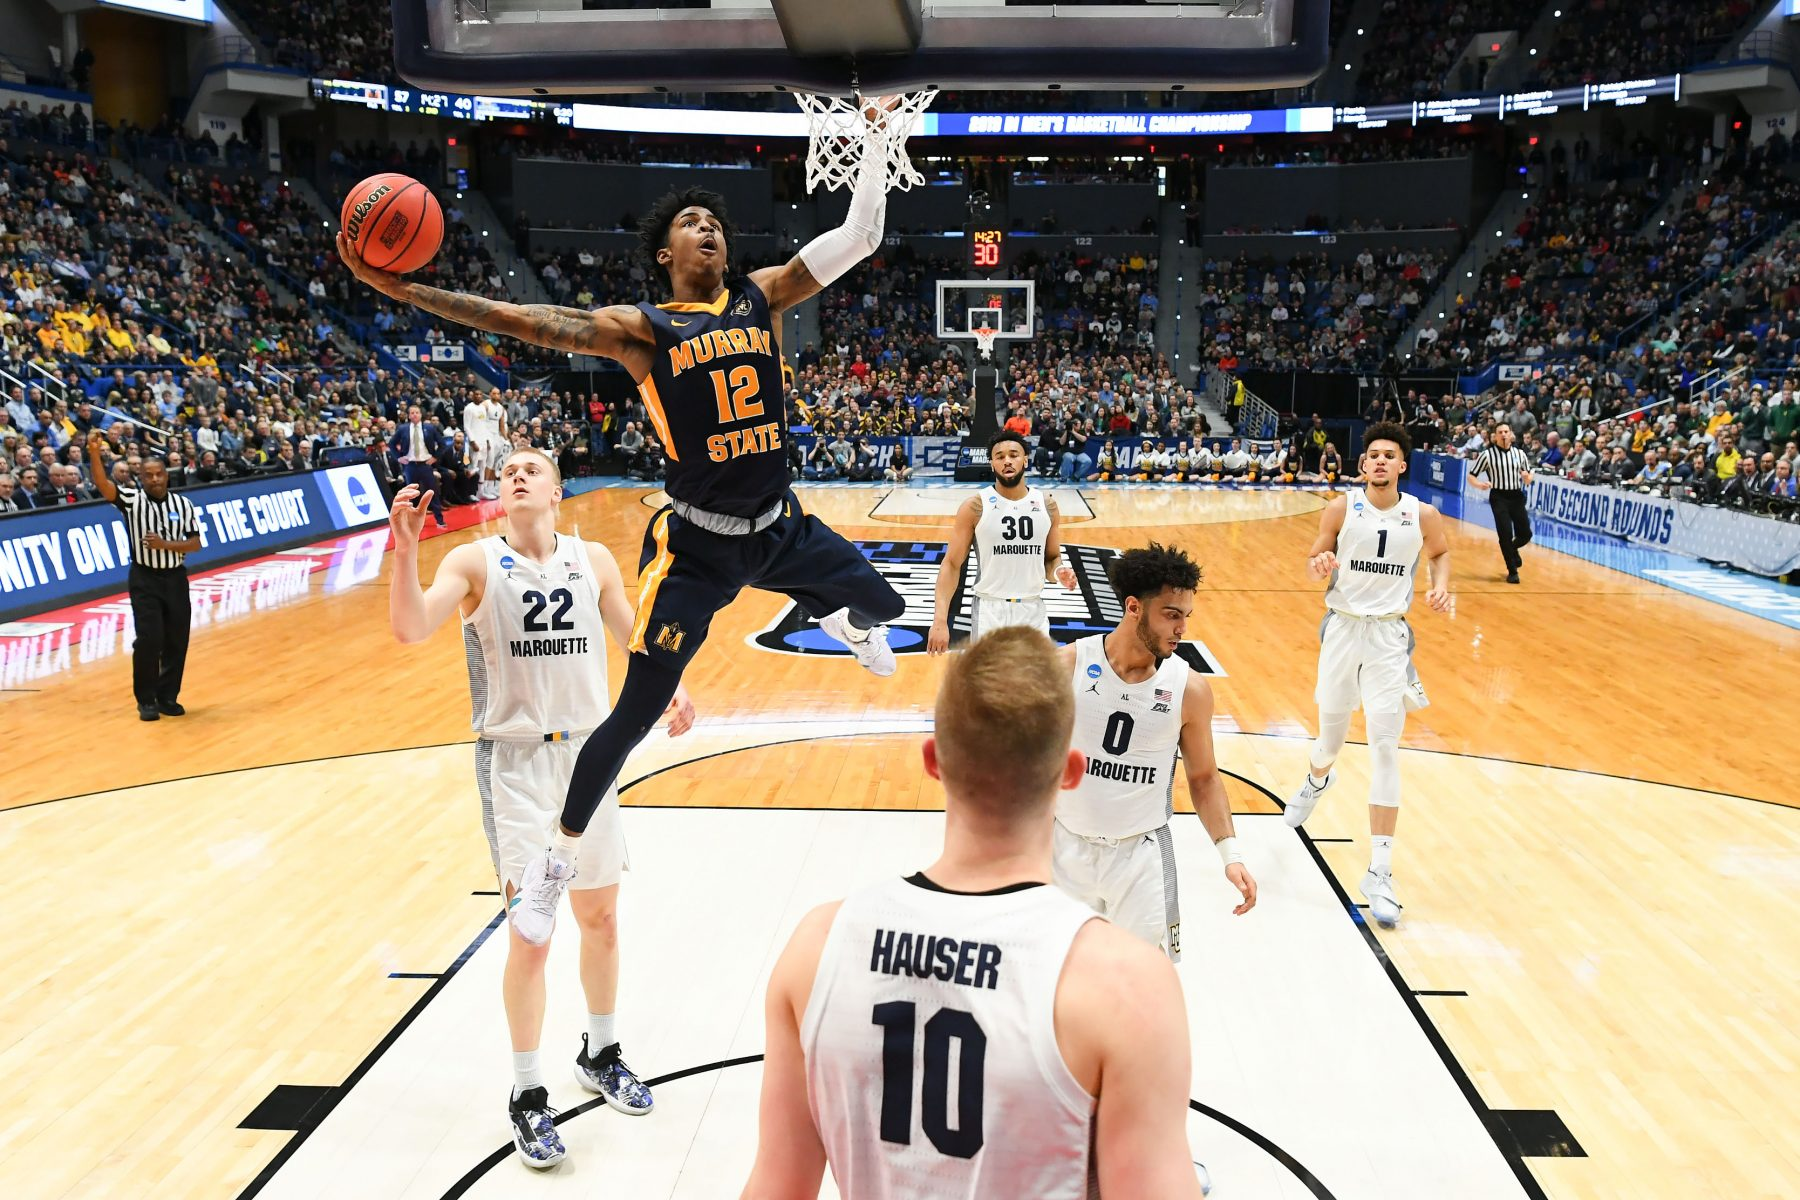 Ja Morant sends awesome tweet after monster game